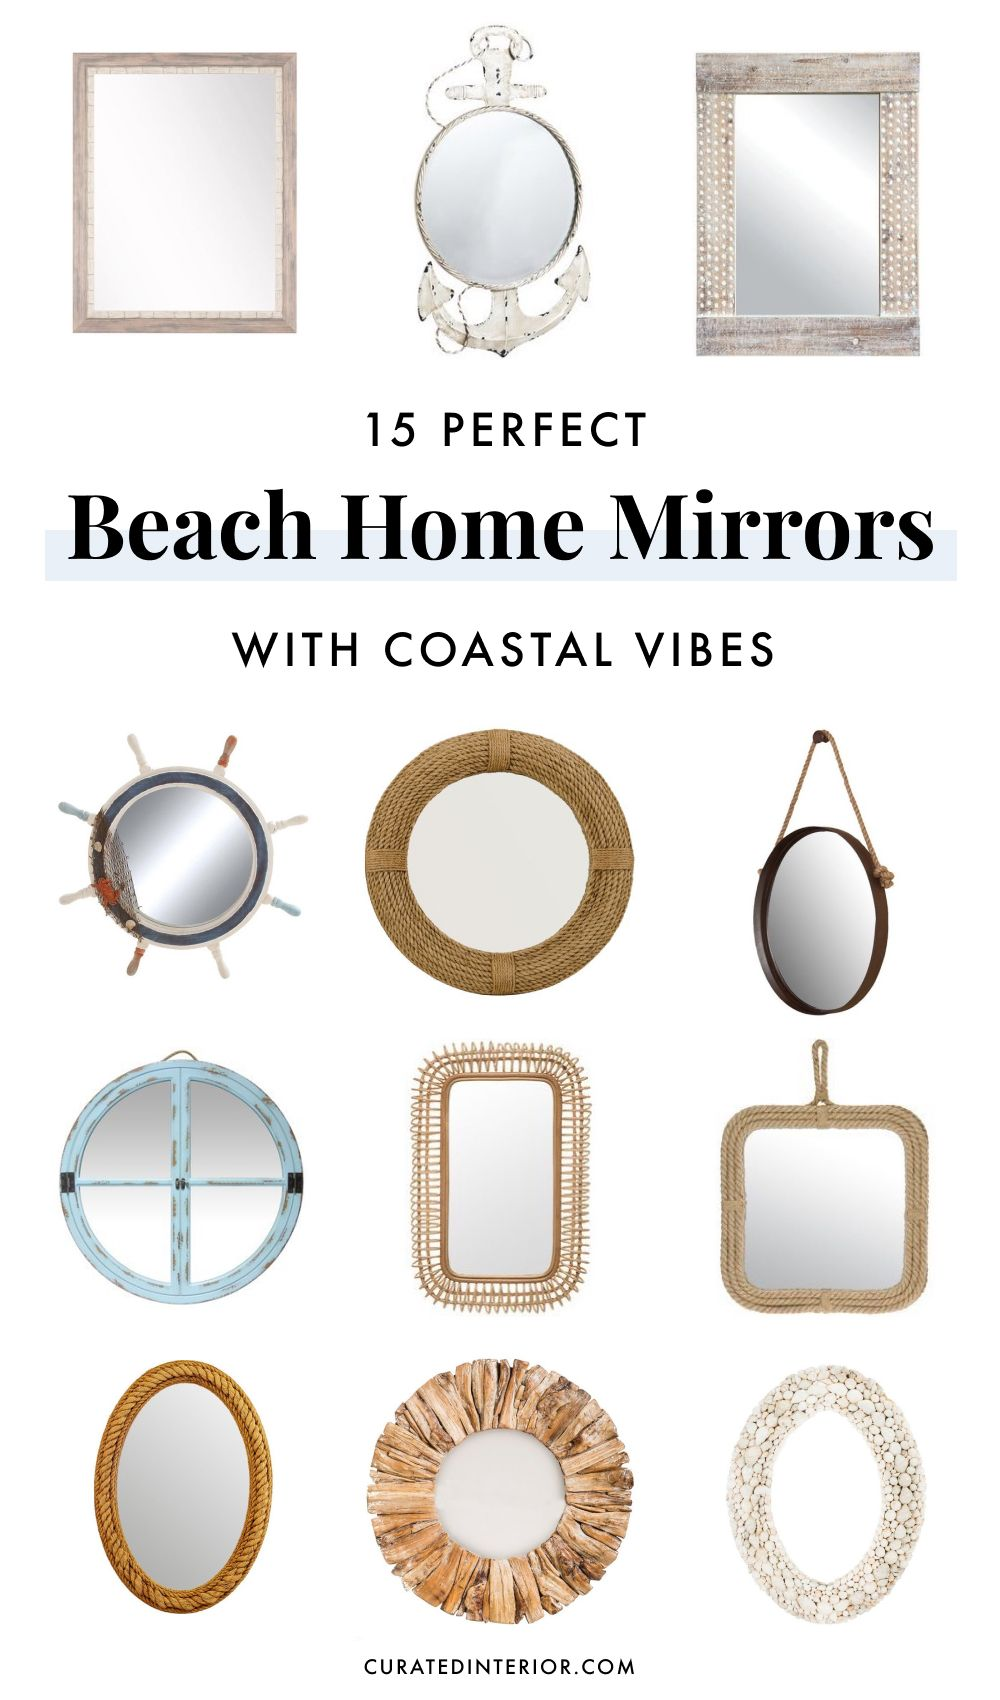 15 Beach Home Mirrors with Coastal Vibes